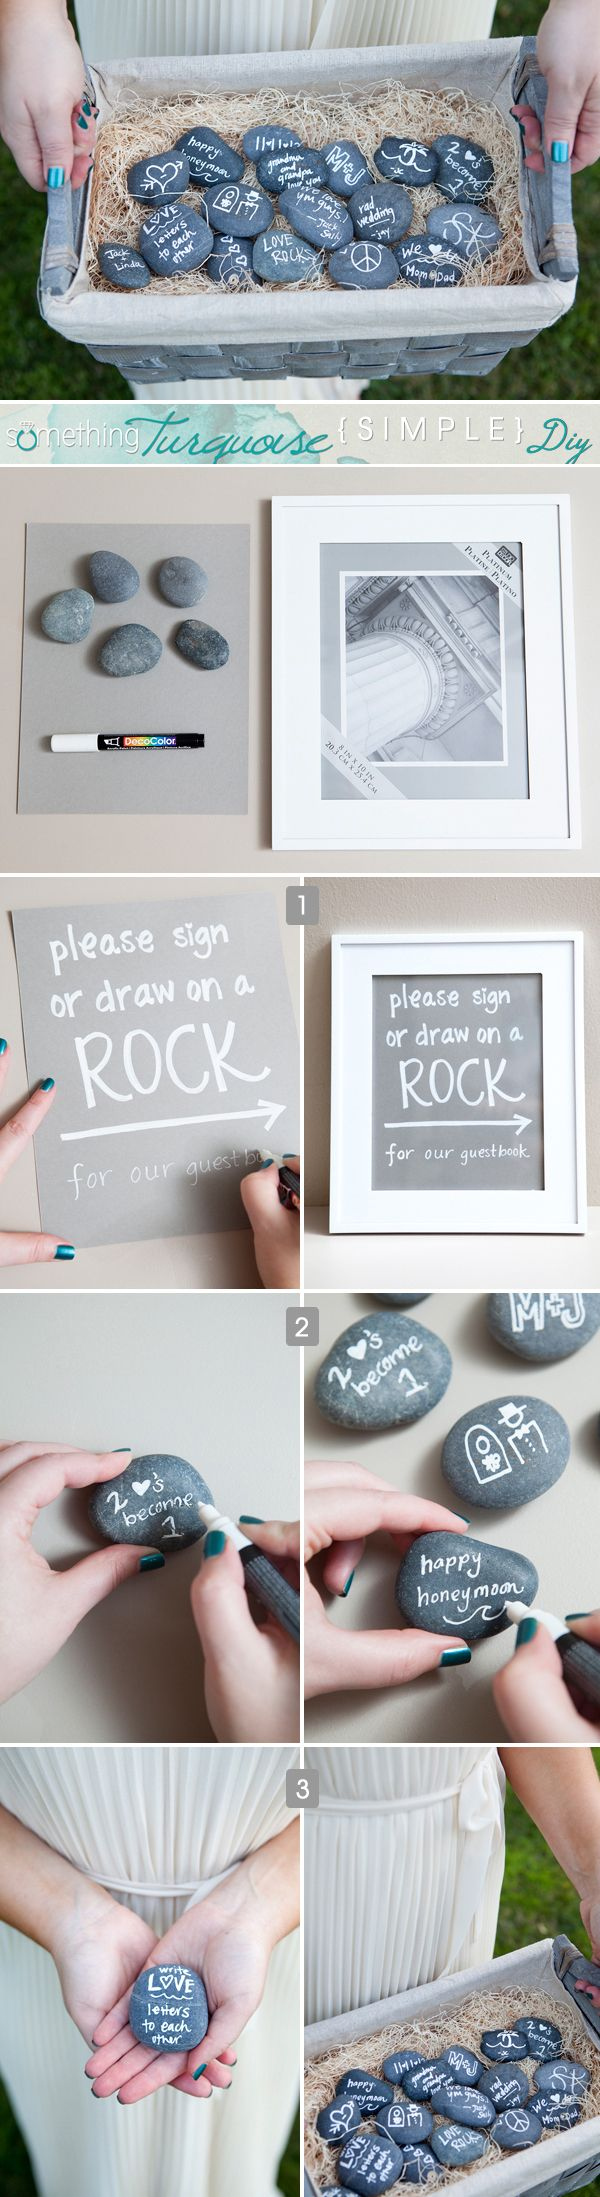 """NEW!!! It's the """"Simple DIY""""... from SomethingTurquoise.com! Have your guests write on smooth lava rocks as your guest book!!! #diywedding #wedding #guestbook"""